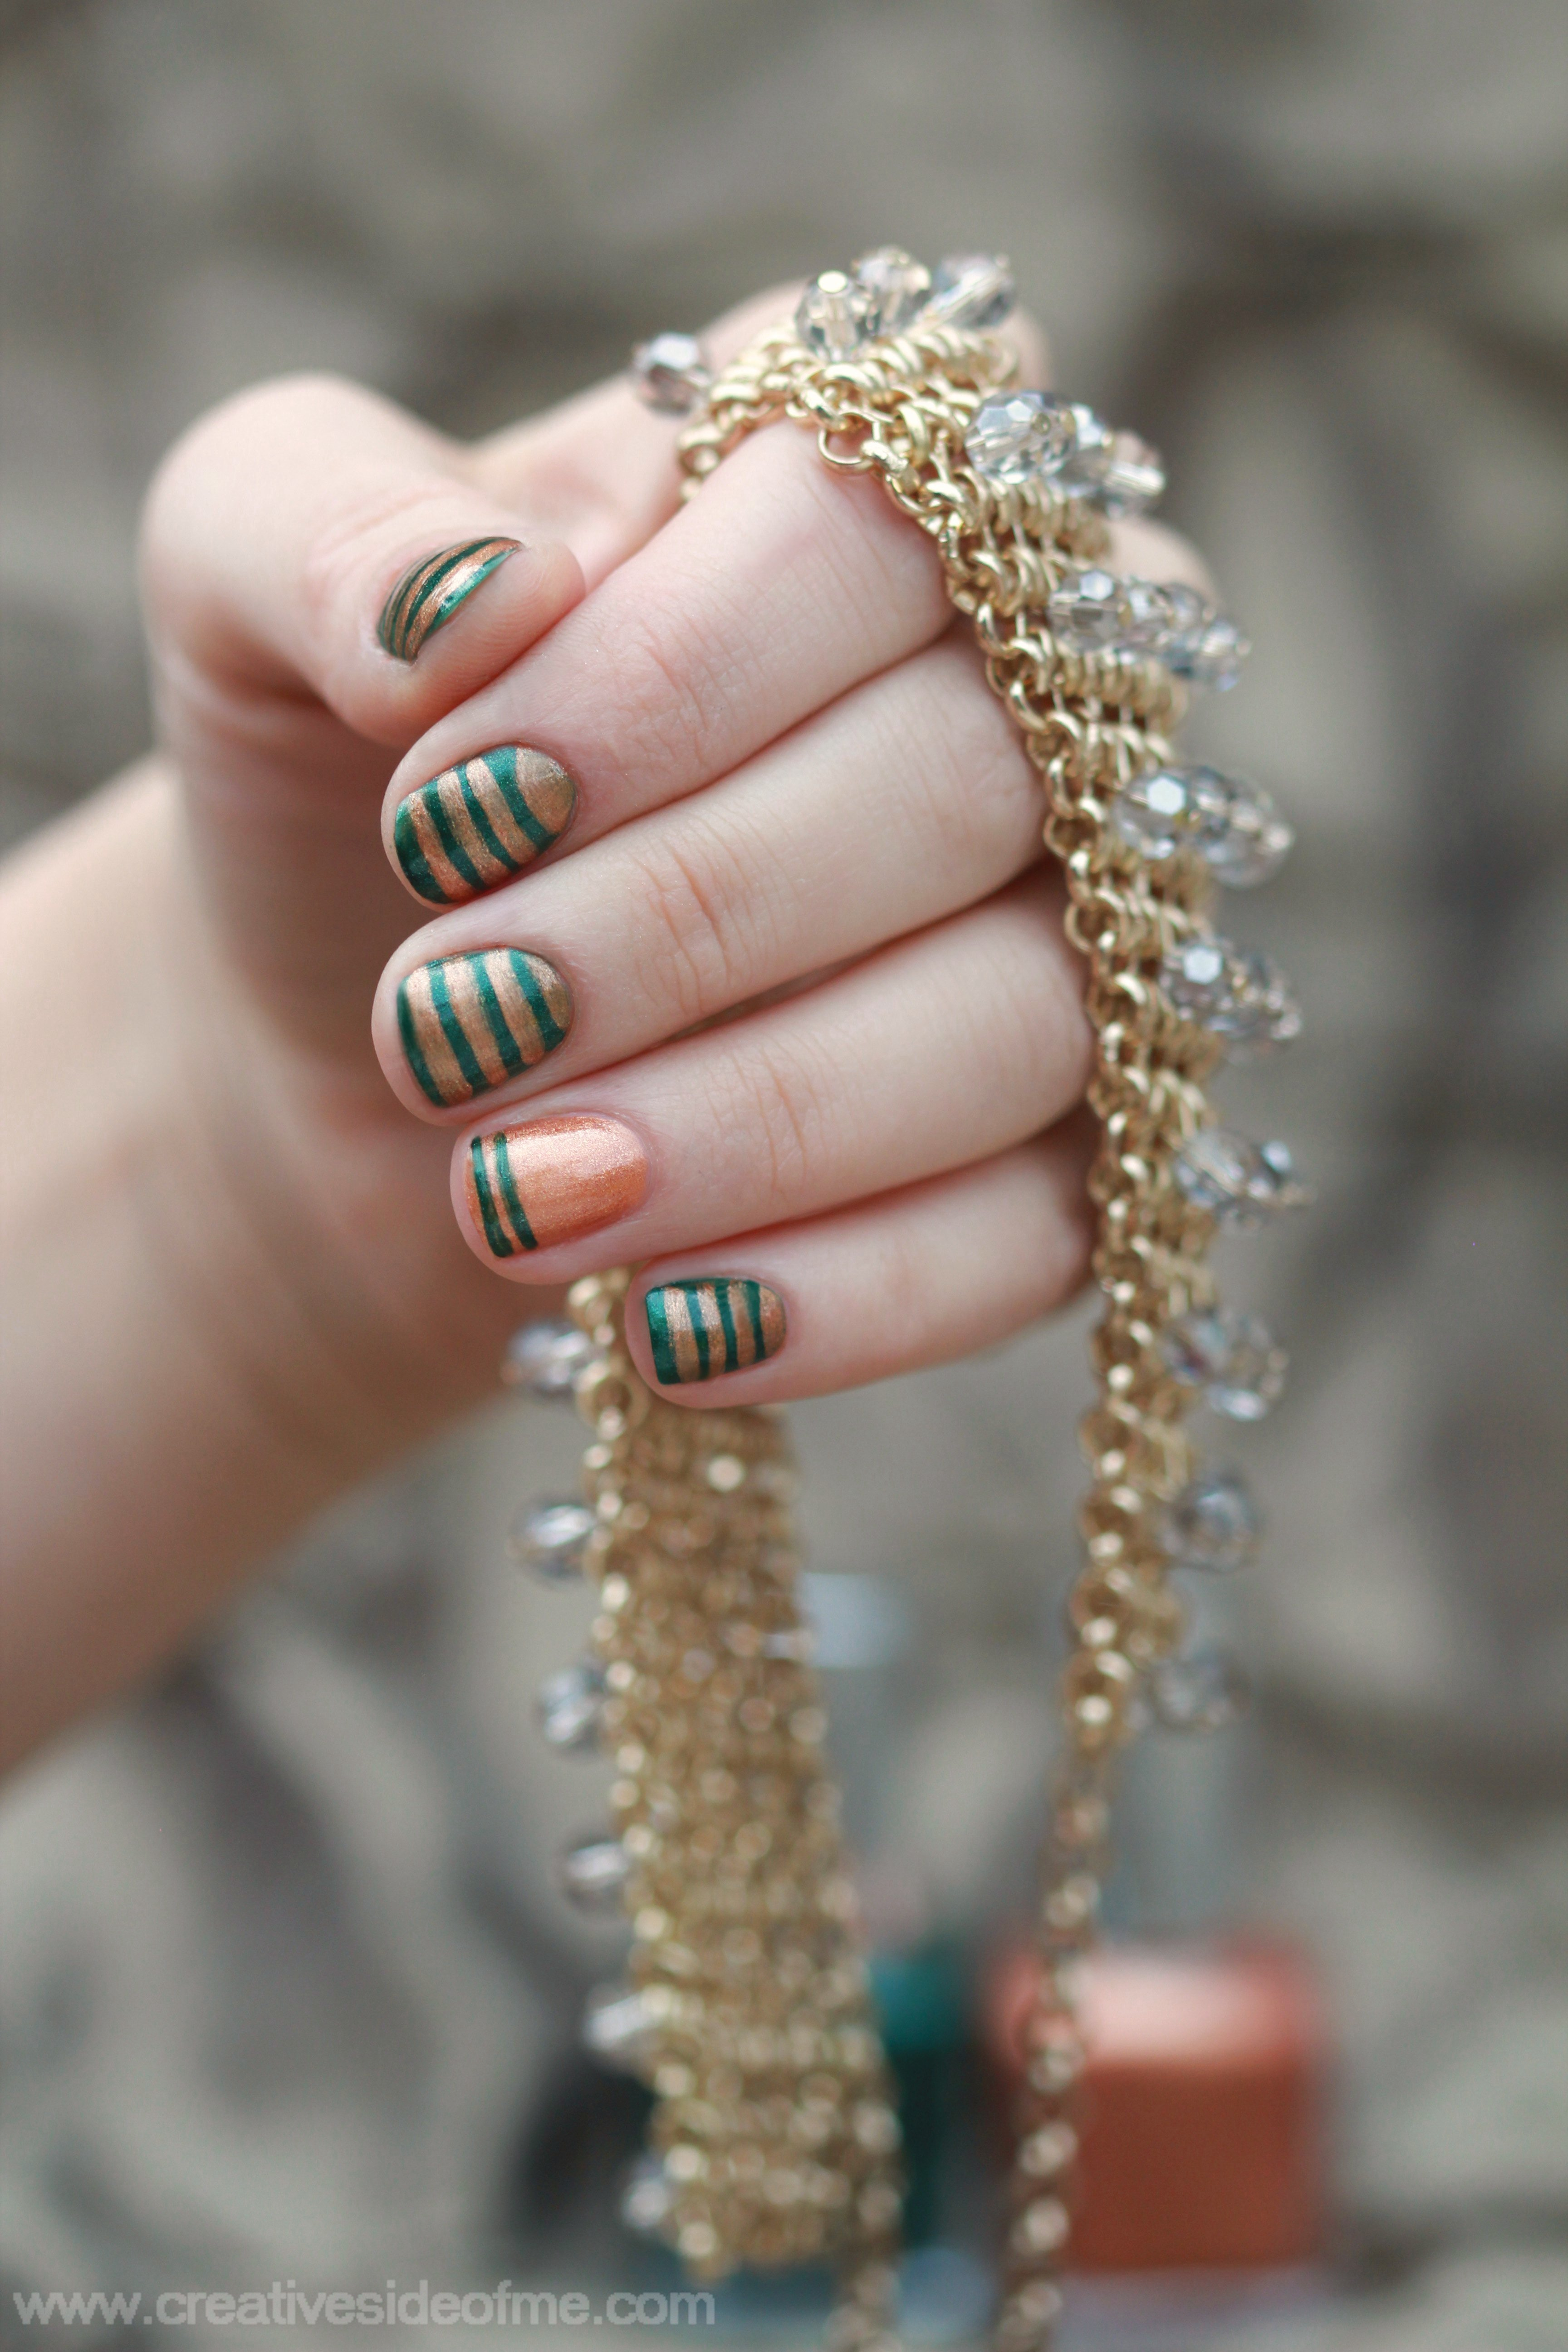 Nail Art | Creative Side of Me | Page 2